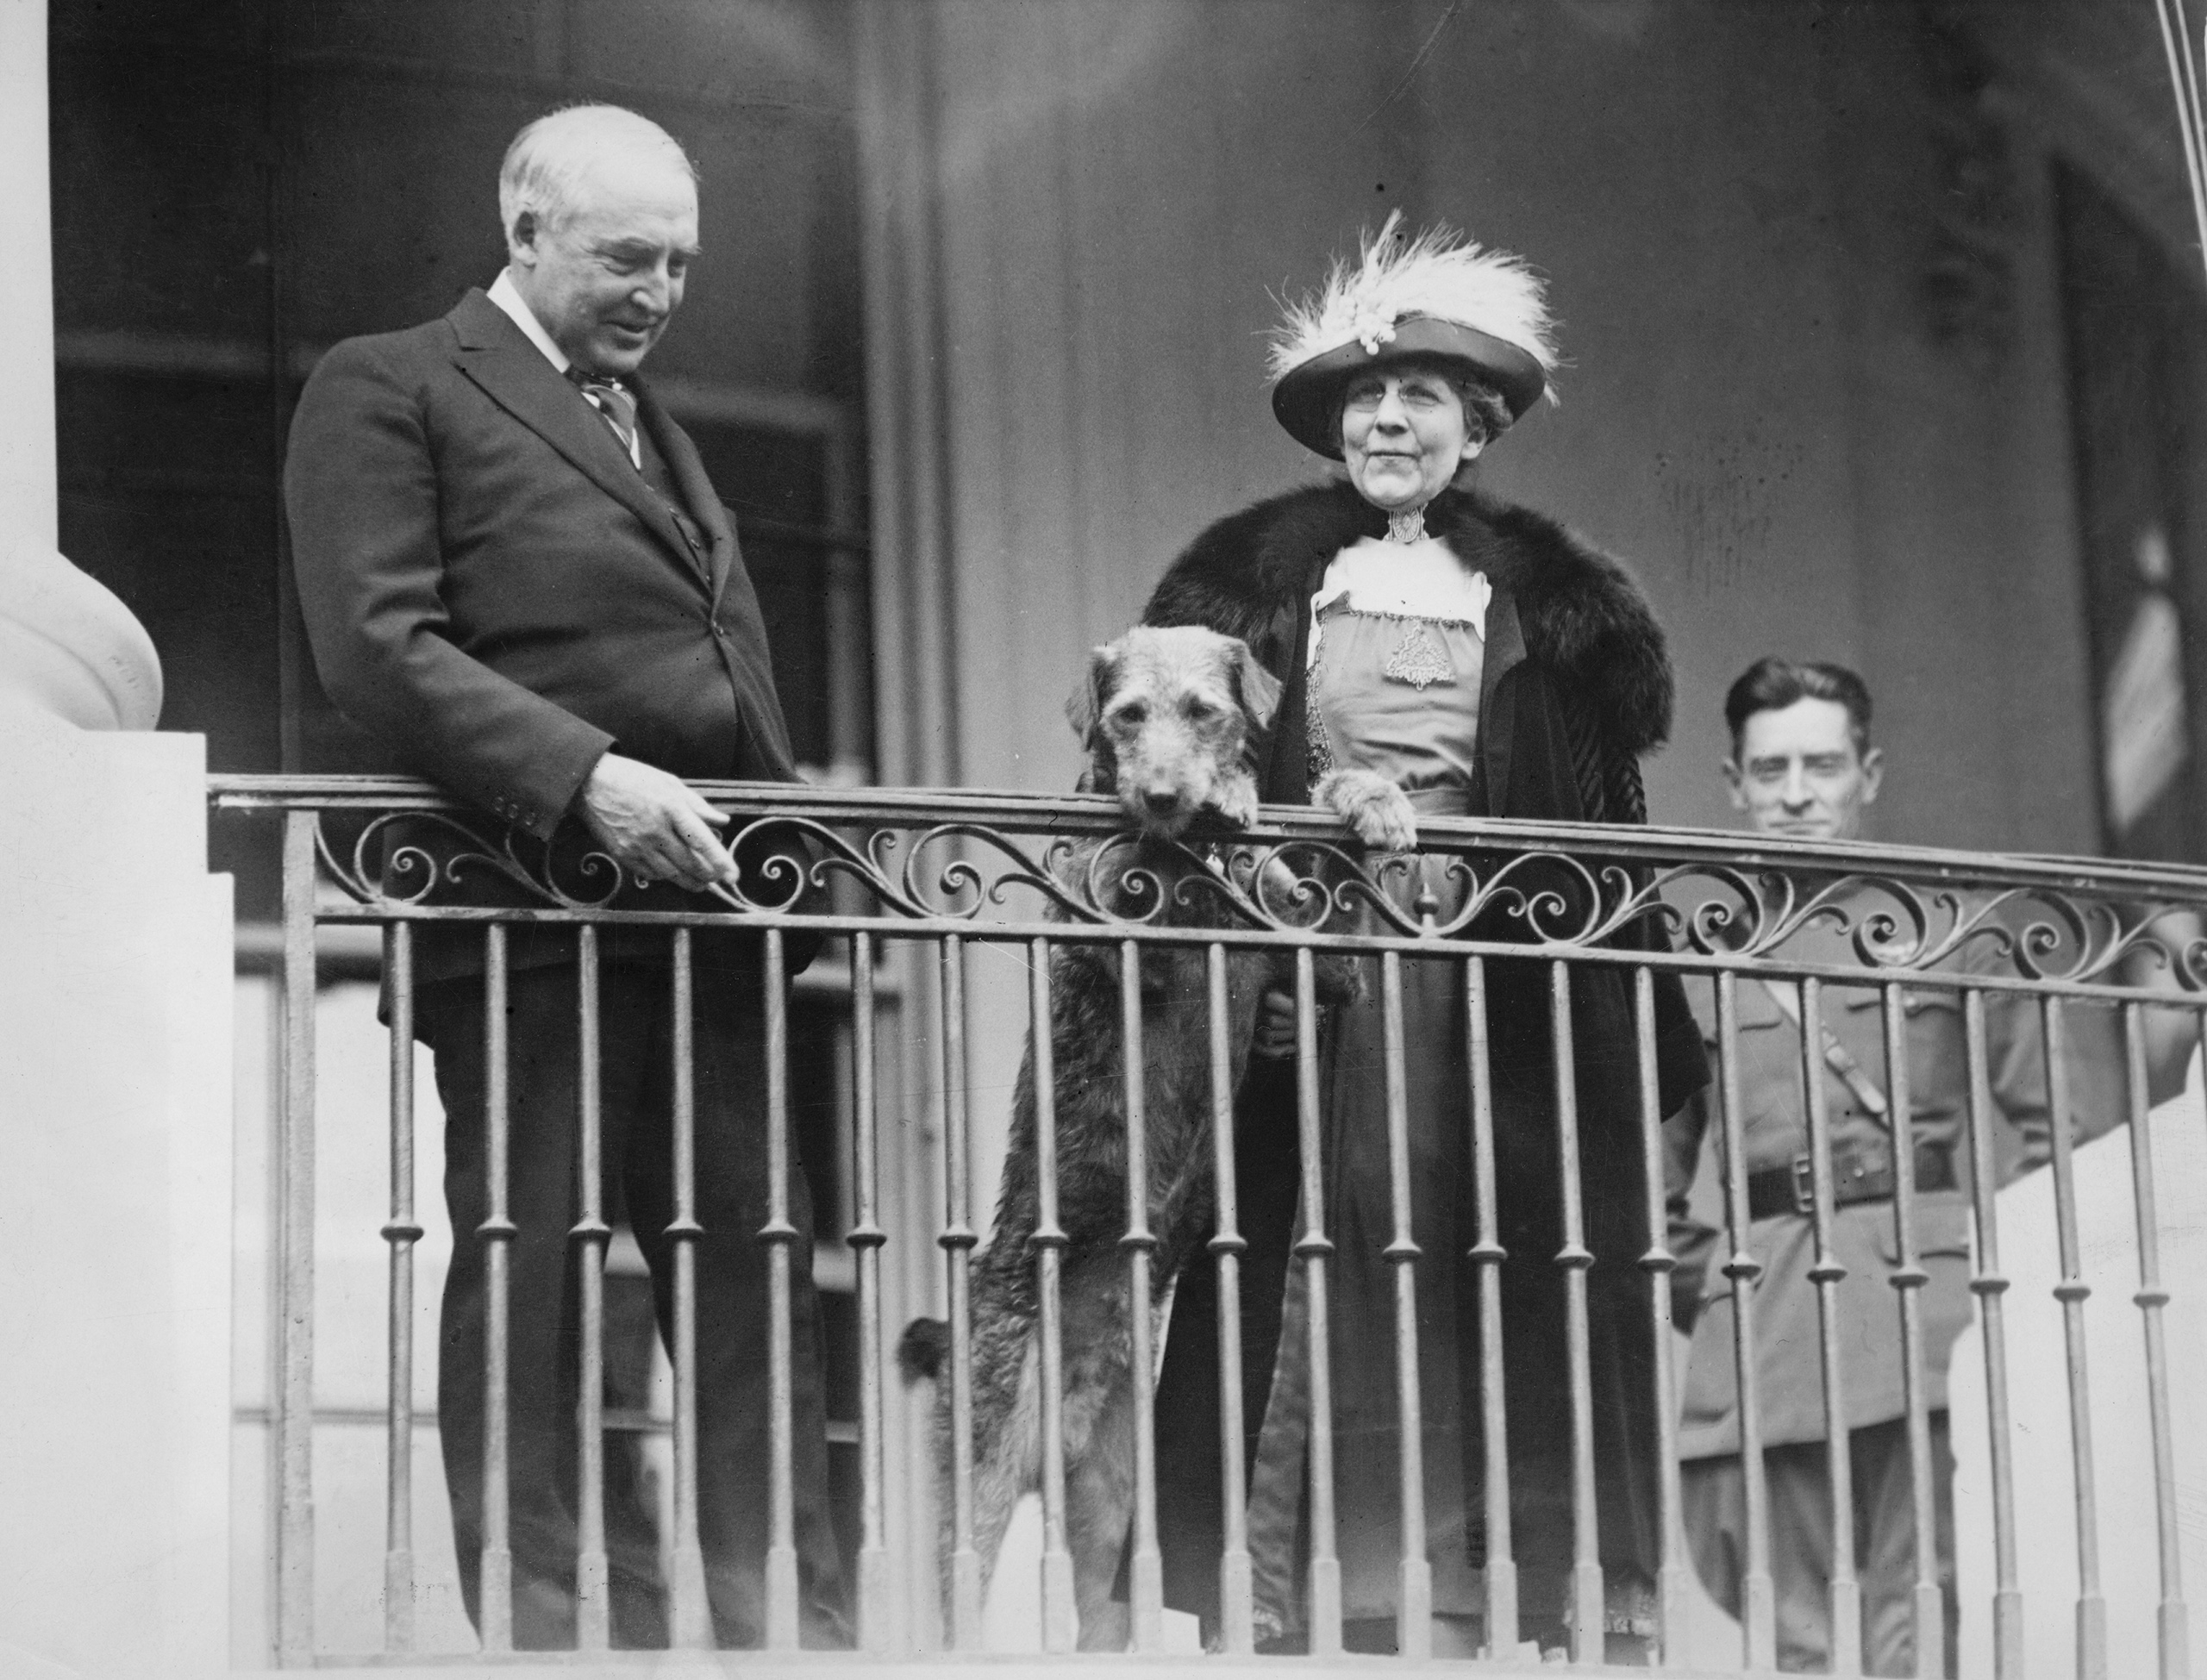 Warren G. Harding, Florence Harding, and their dog, Laddie Boy, watch from a balcony as an annual Easter Monday children's egg-rolling event takes place on the White House lawn, circa 1922.